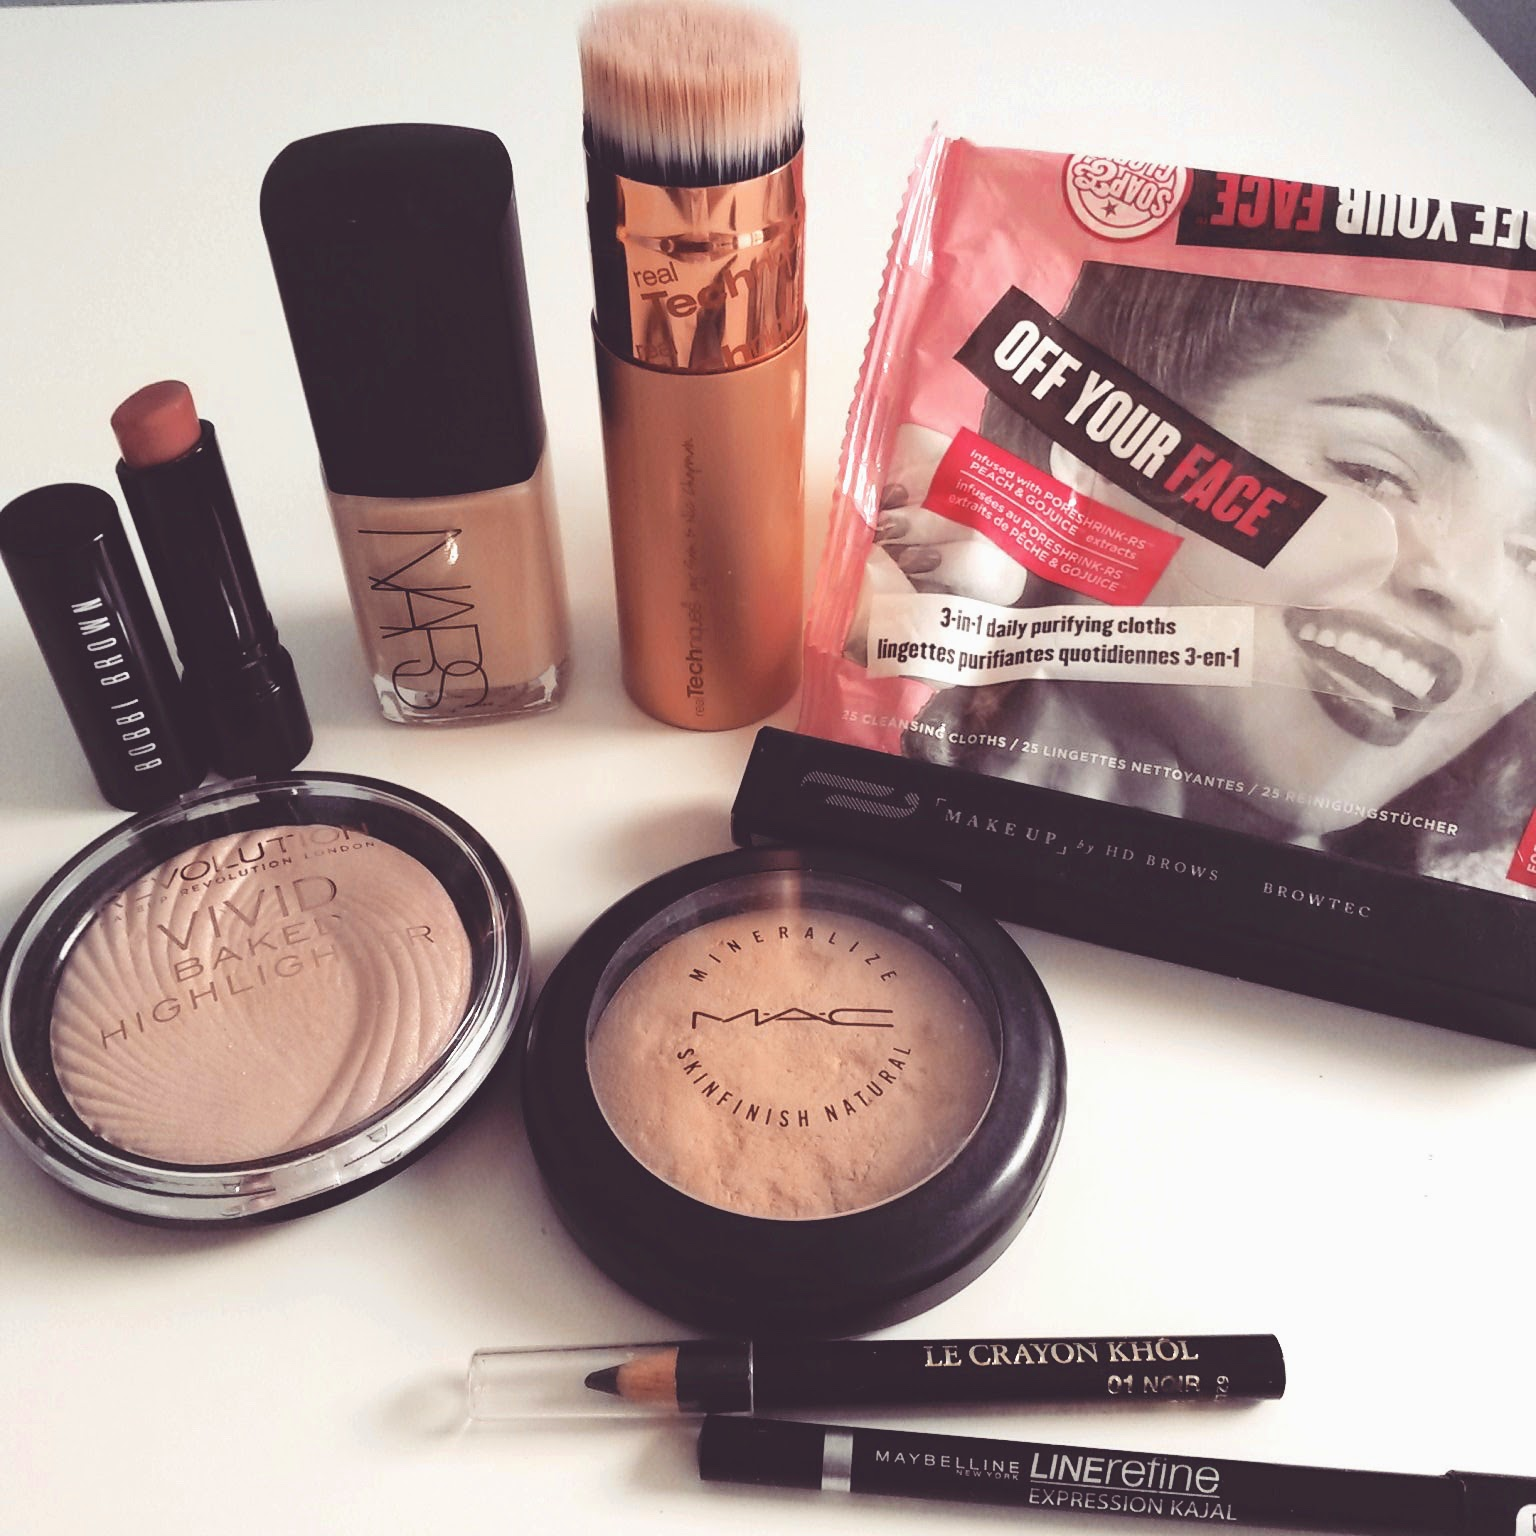 Beauty and Makeup Regrets 2015